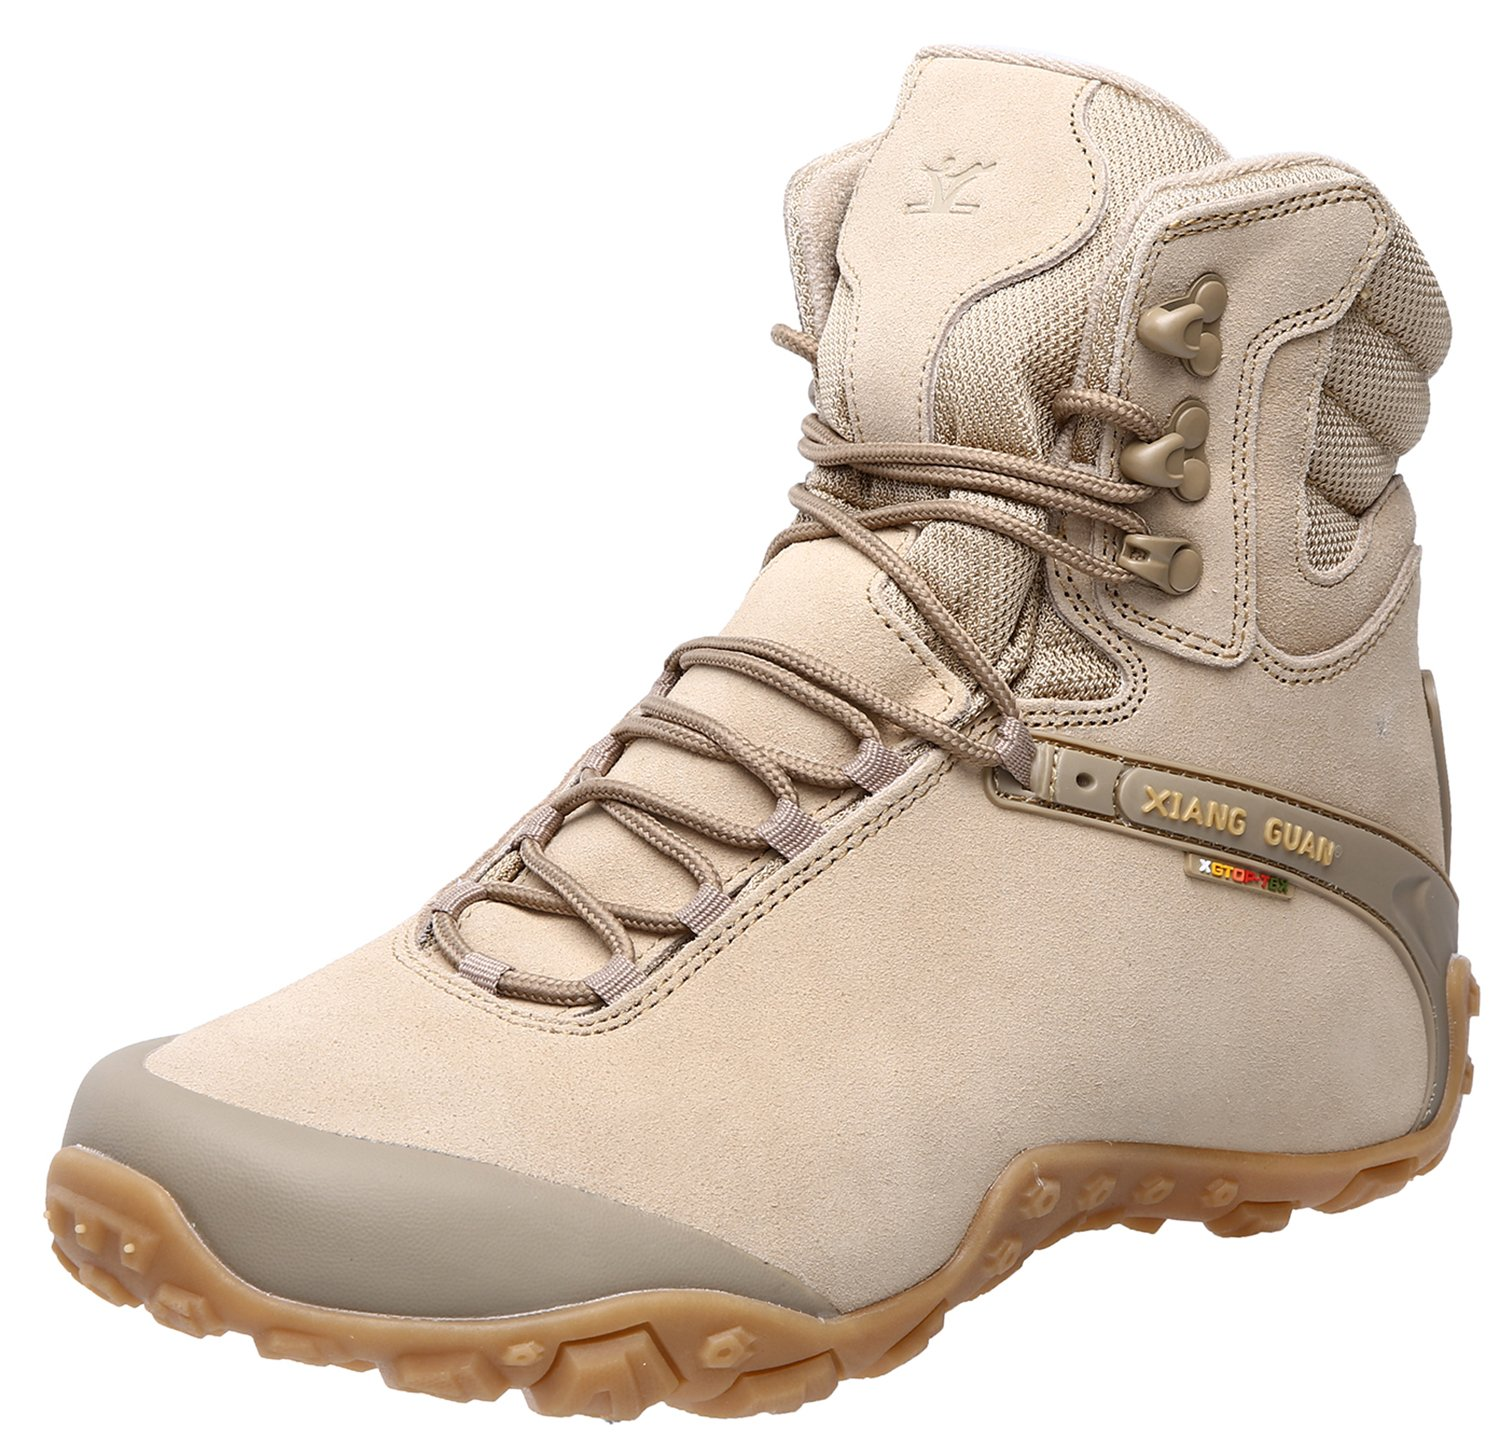 XIANG GUAN Women's Outdoor High-Top Waterproof Trekking Hiking Boots B07DD9BVH7 5.5 M US|Sand